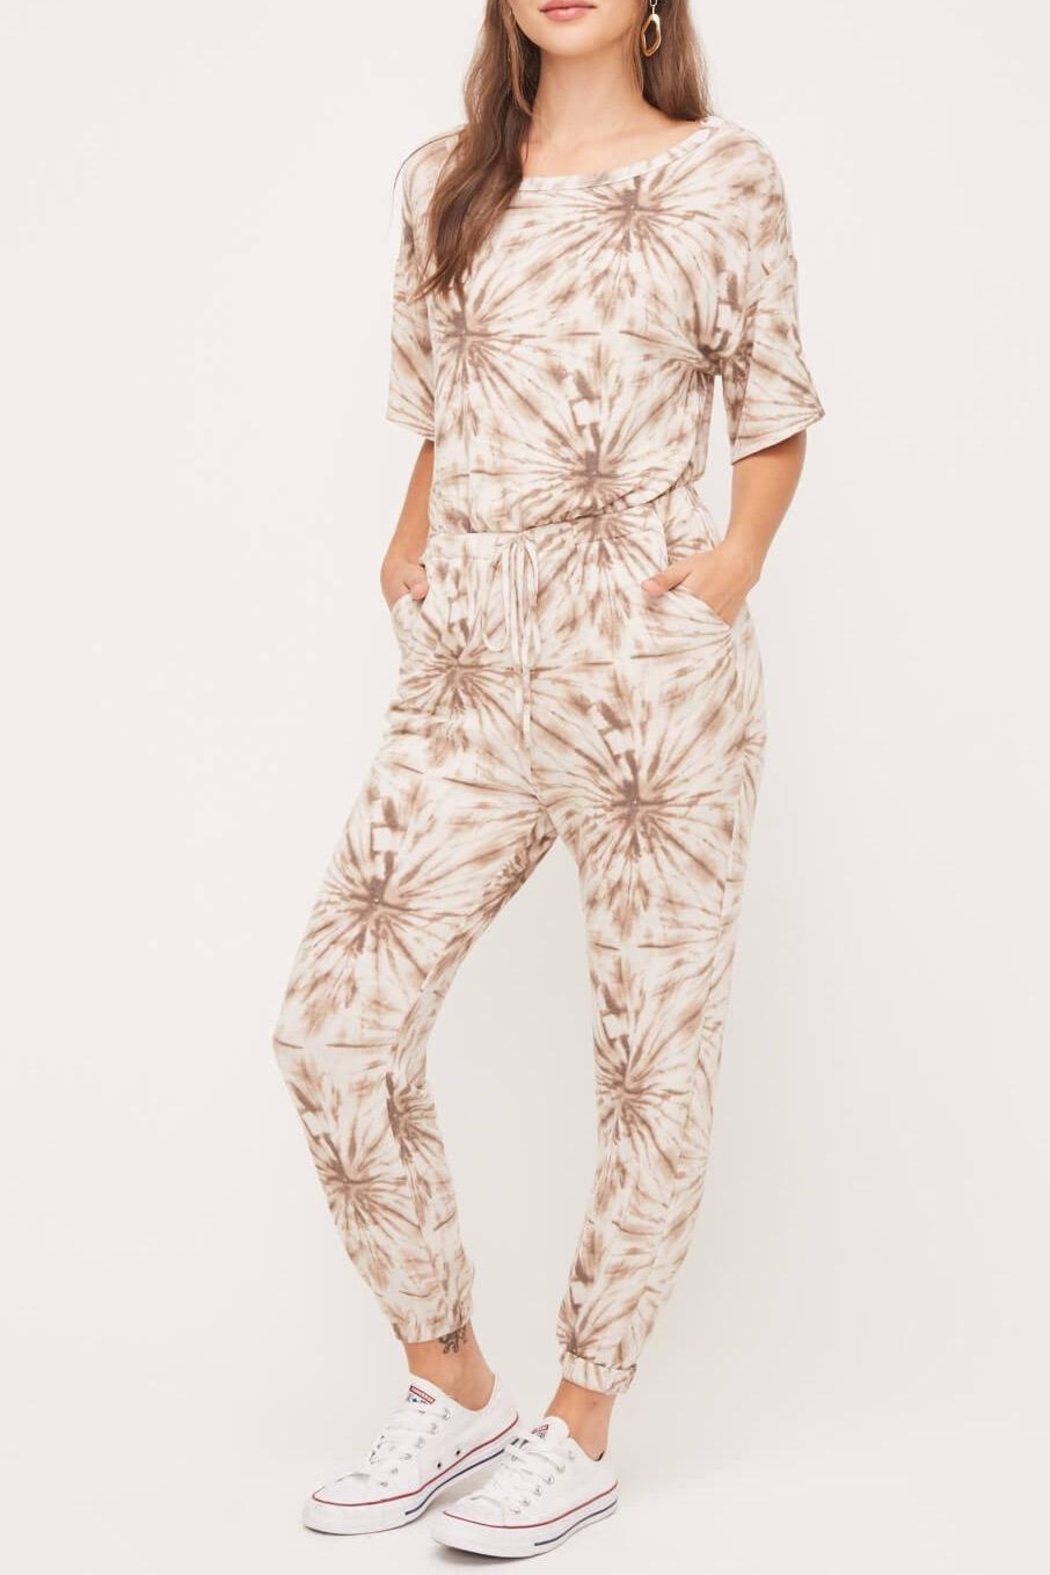 Lush Clothing  Print Lounge Jumper - Side Cropped Image